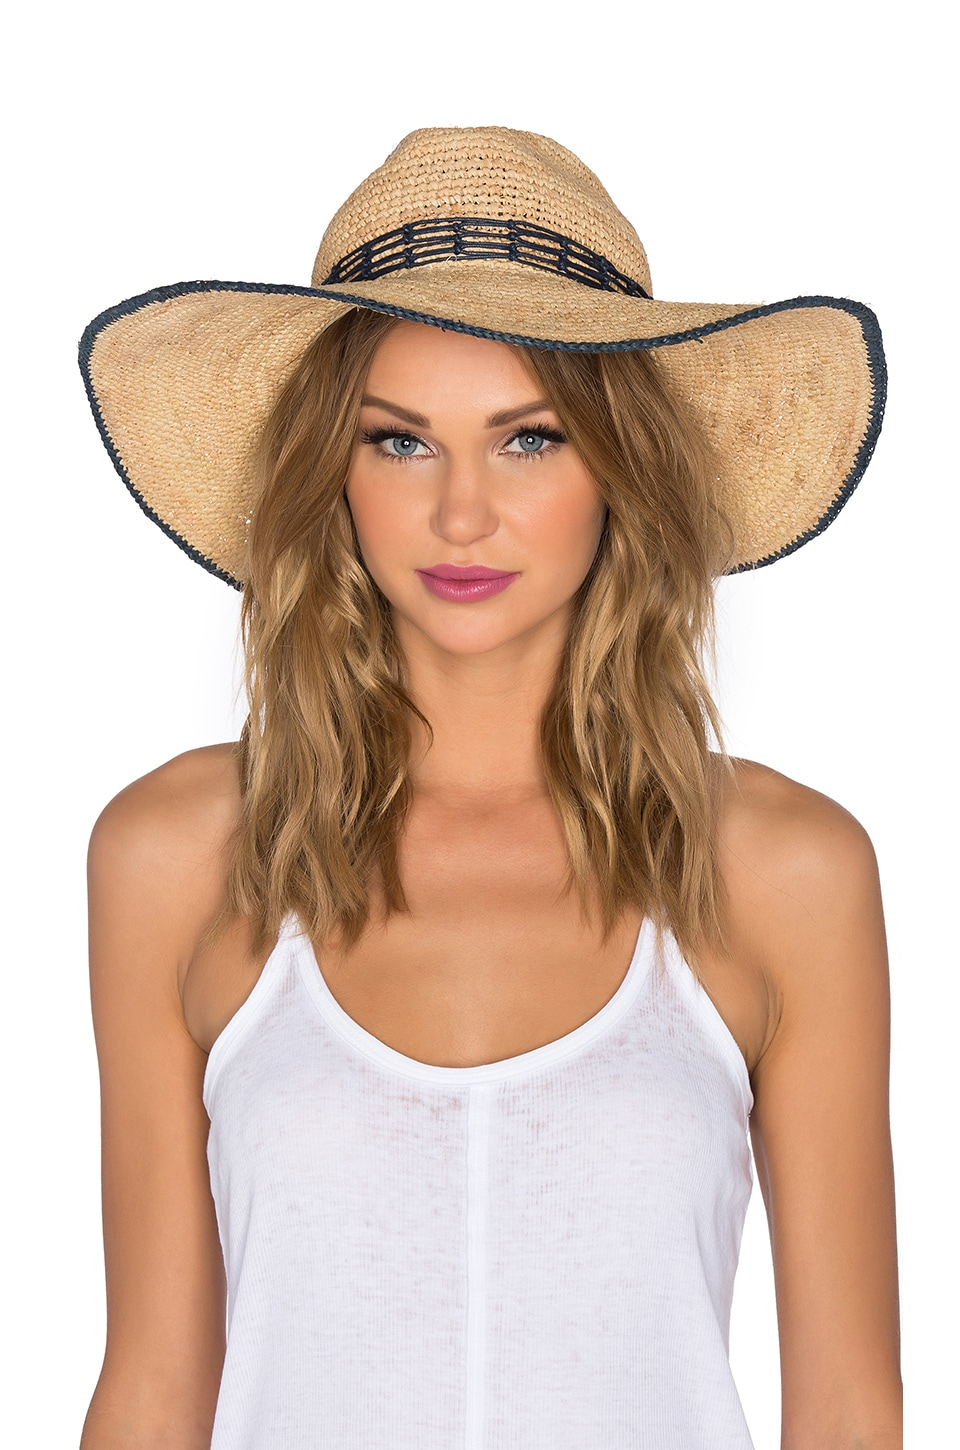 Hat Attack Tipped Edge Raffia Sunhat in Natural & Navy Fishnet Trim